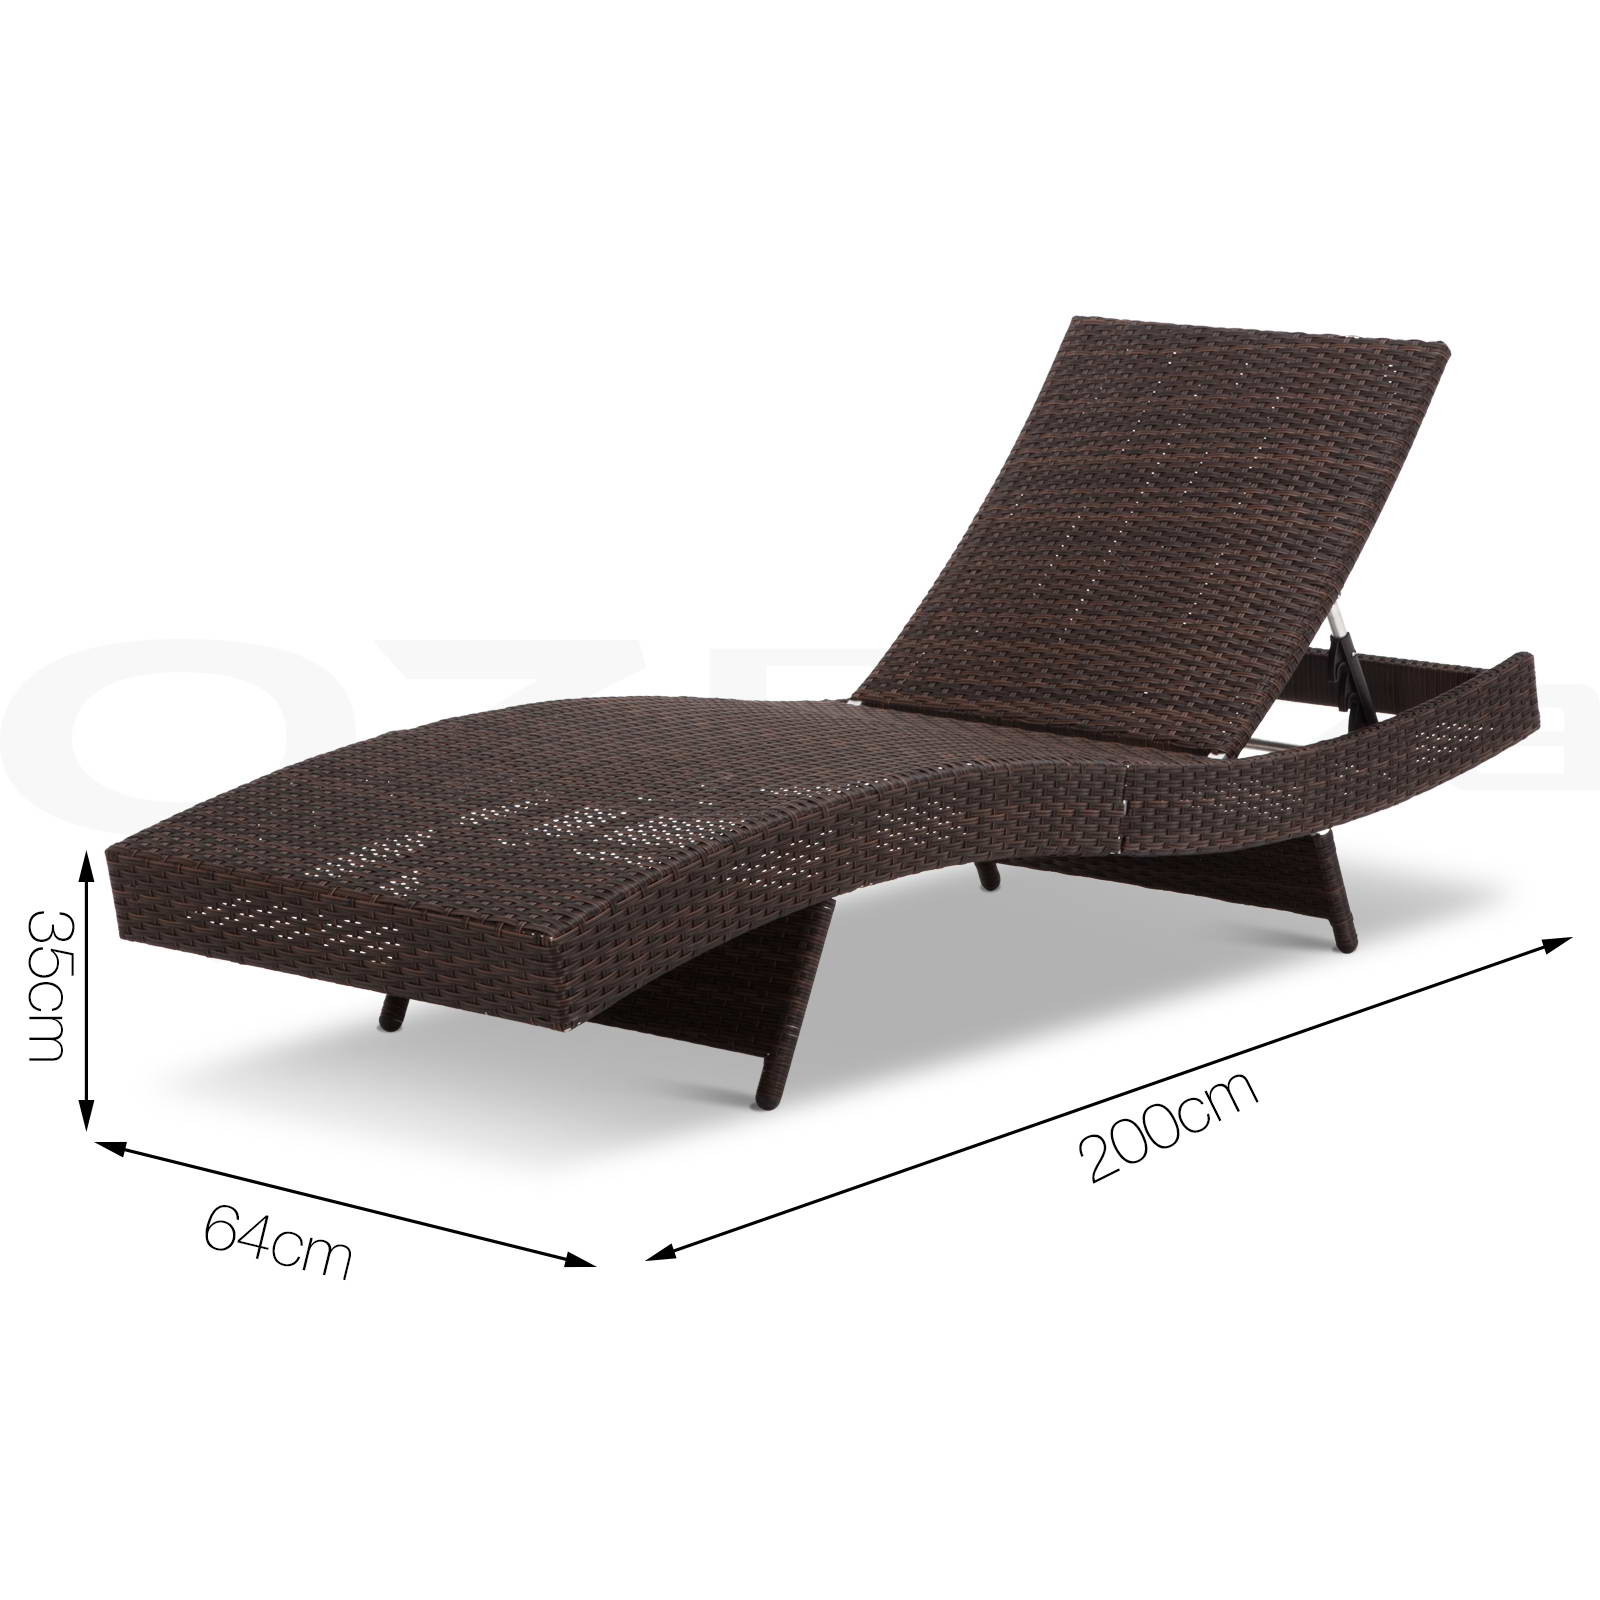 outdoor sun lounge wicker rattan chair pool bed garden furniture sofa brown aud. Black Bedroom Furniture Sets. Home Design Ideas